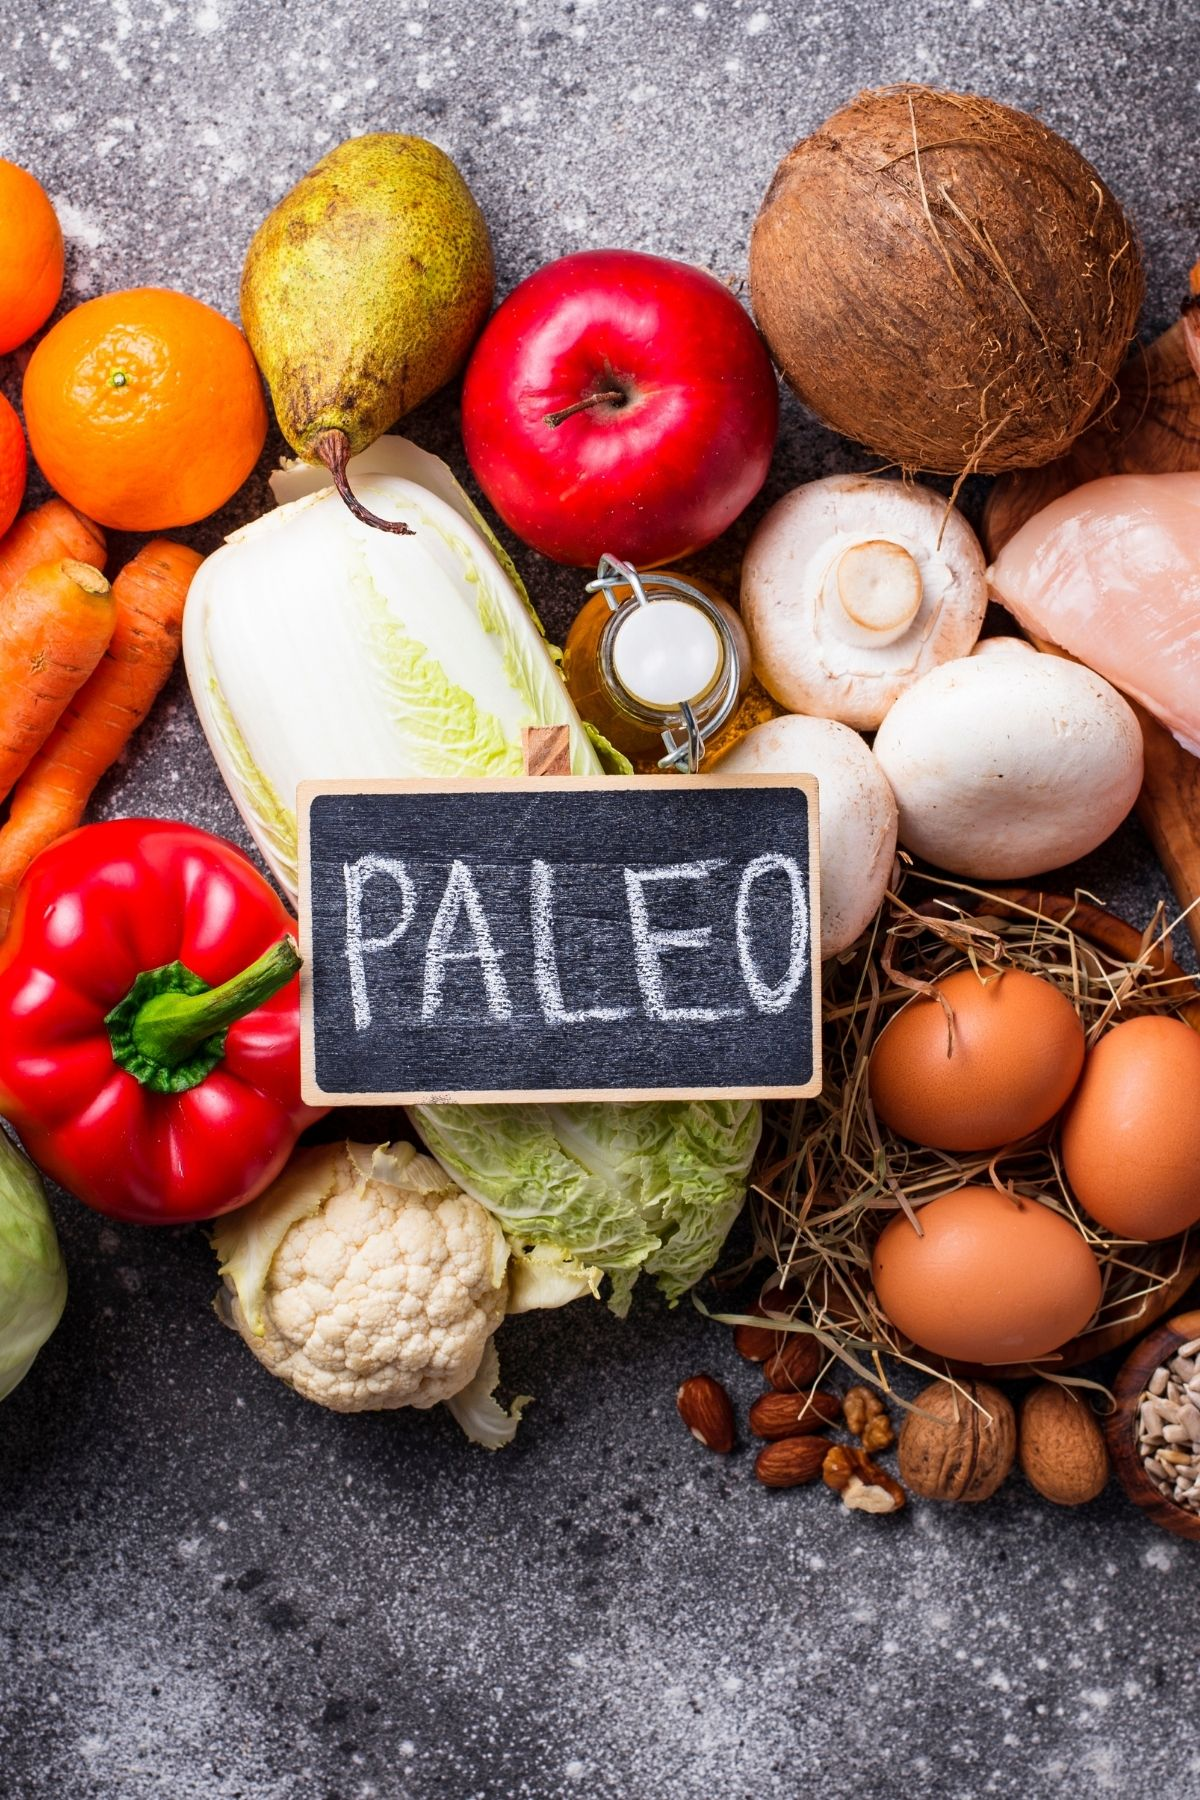 healthy foods on a countertop with a sign that says paleo